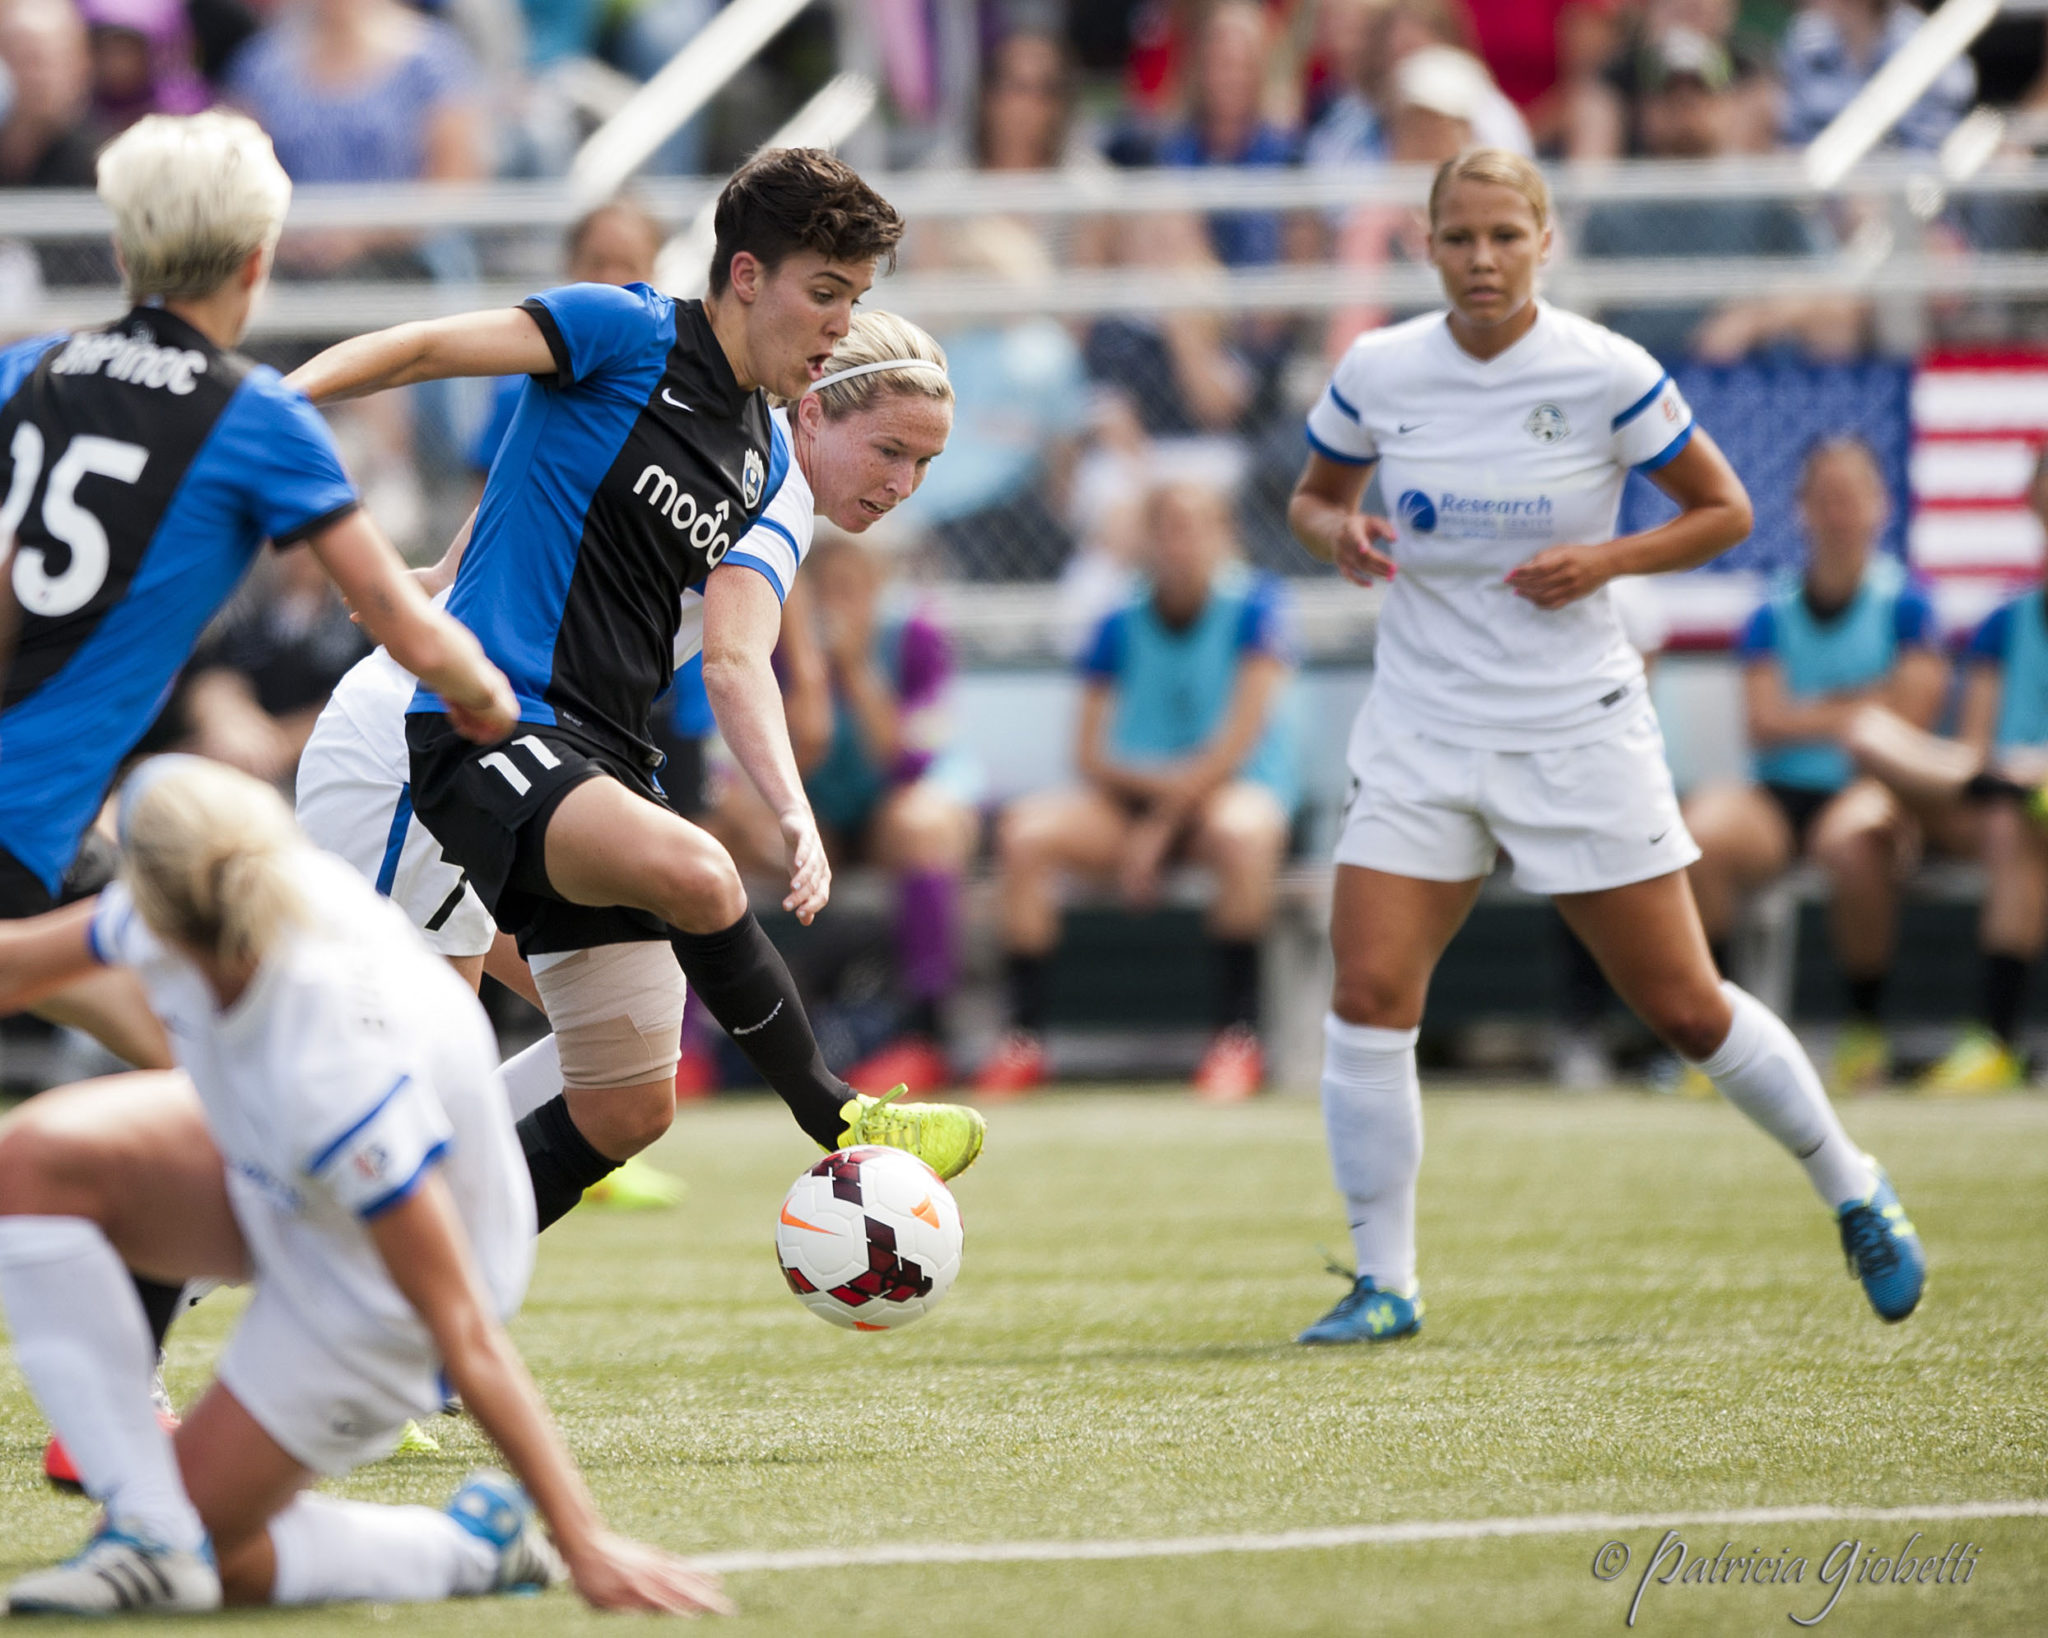 Seattle Reign FC captain Keelin Winters will retire at the end of the NWSL season. (Photo Copyright Patricia Giobetti for The Equalizer)